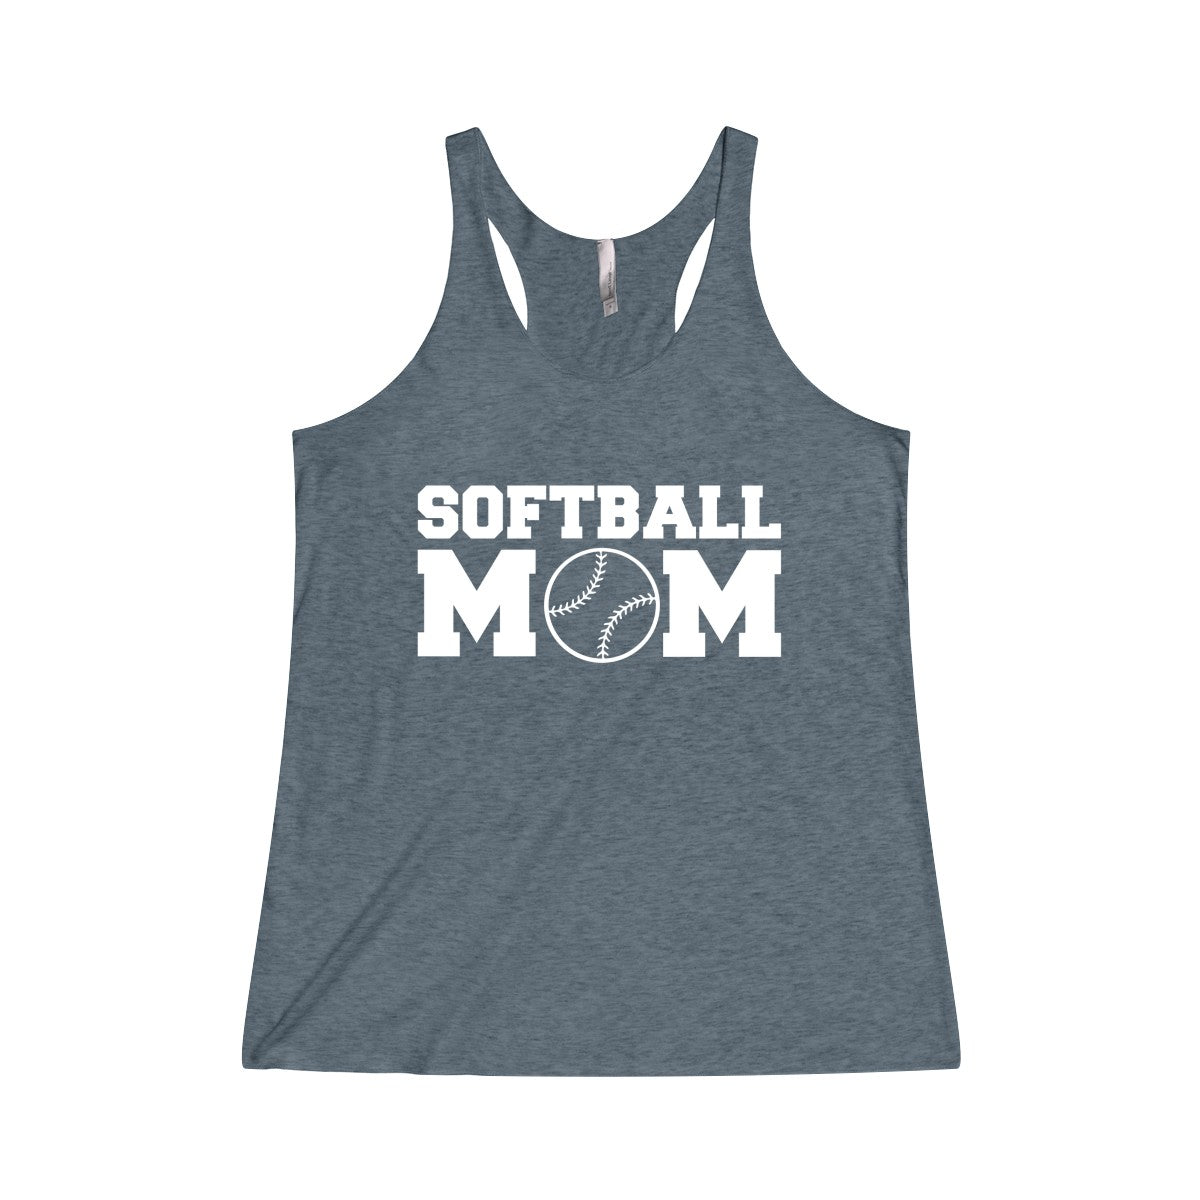 Softball Mom Women's Tri-Blend Racerback Tank